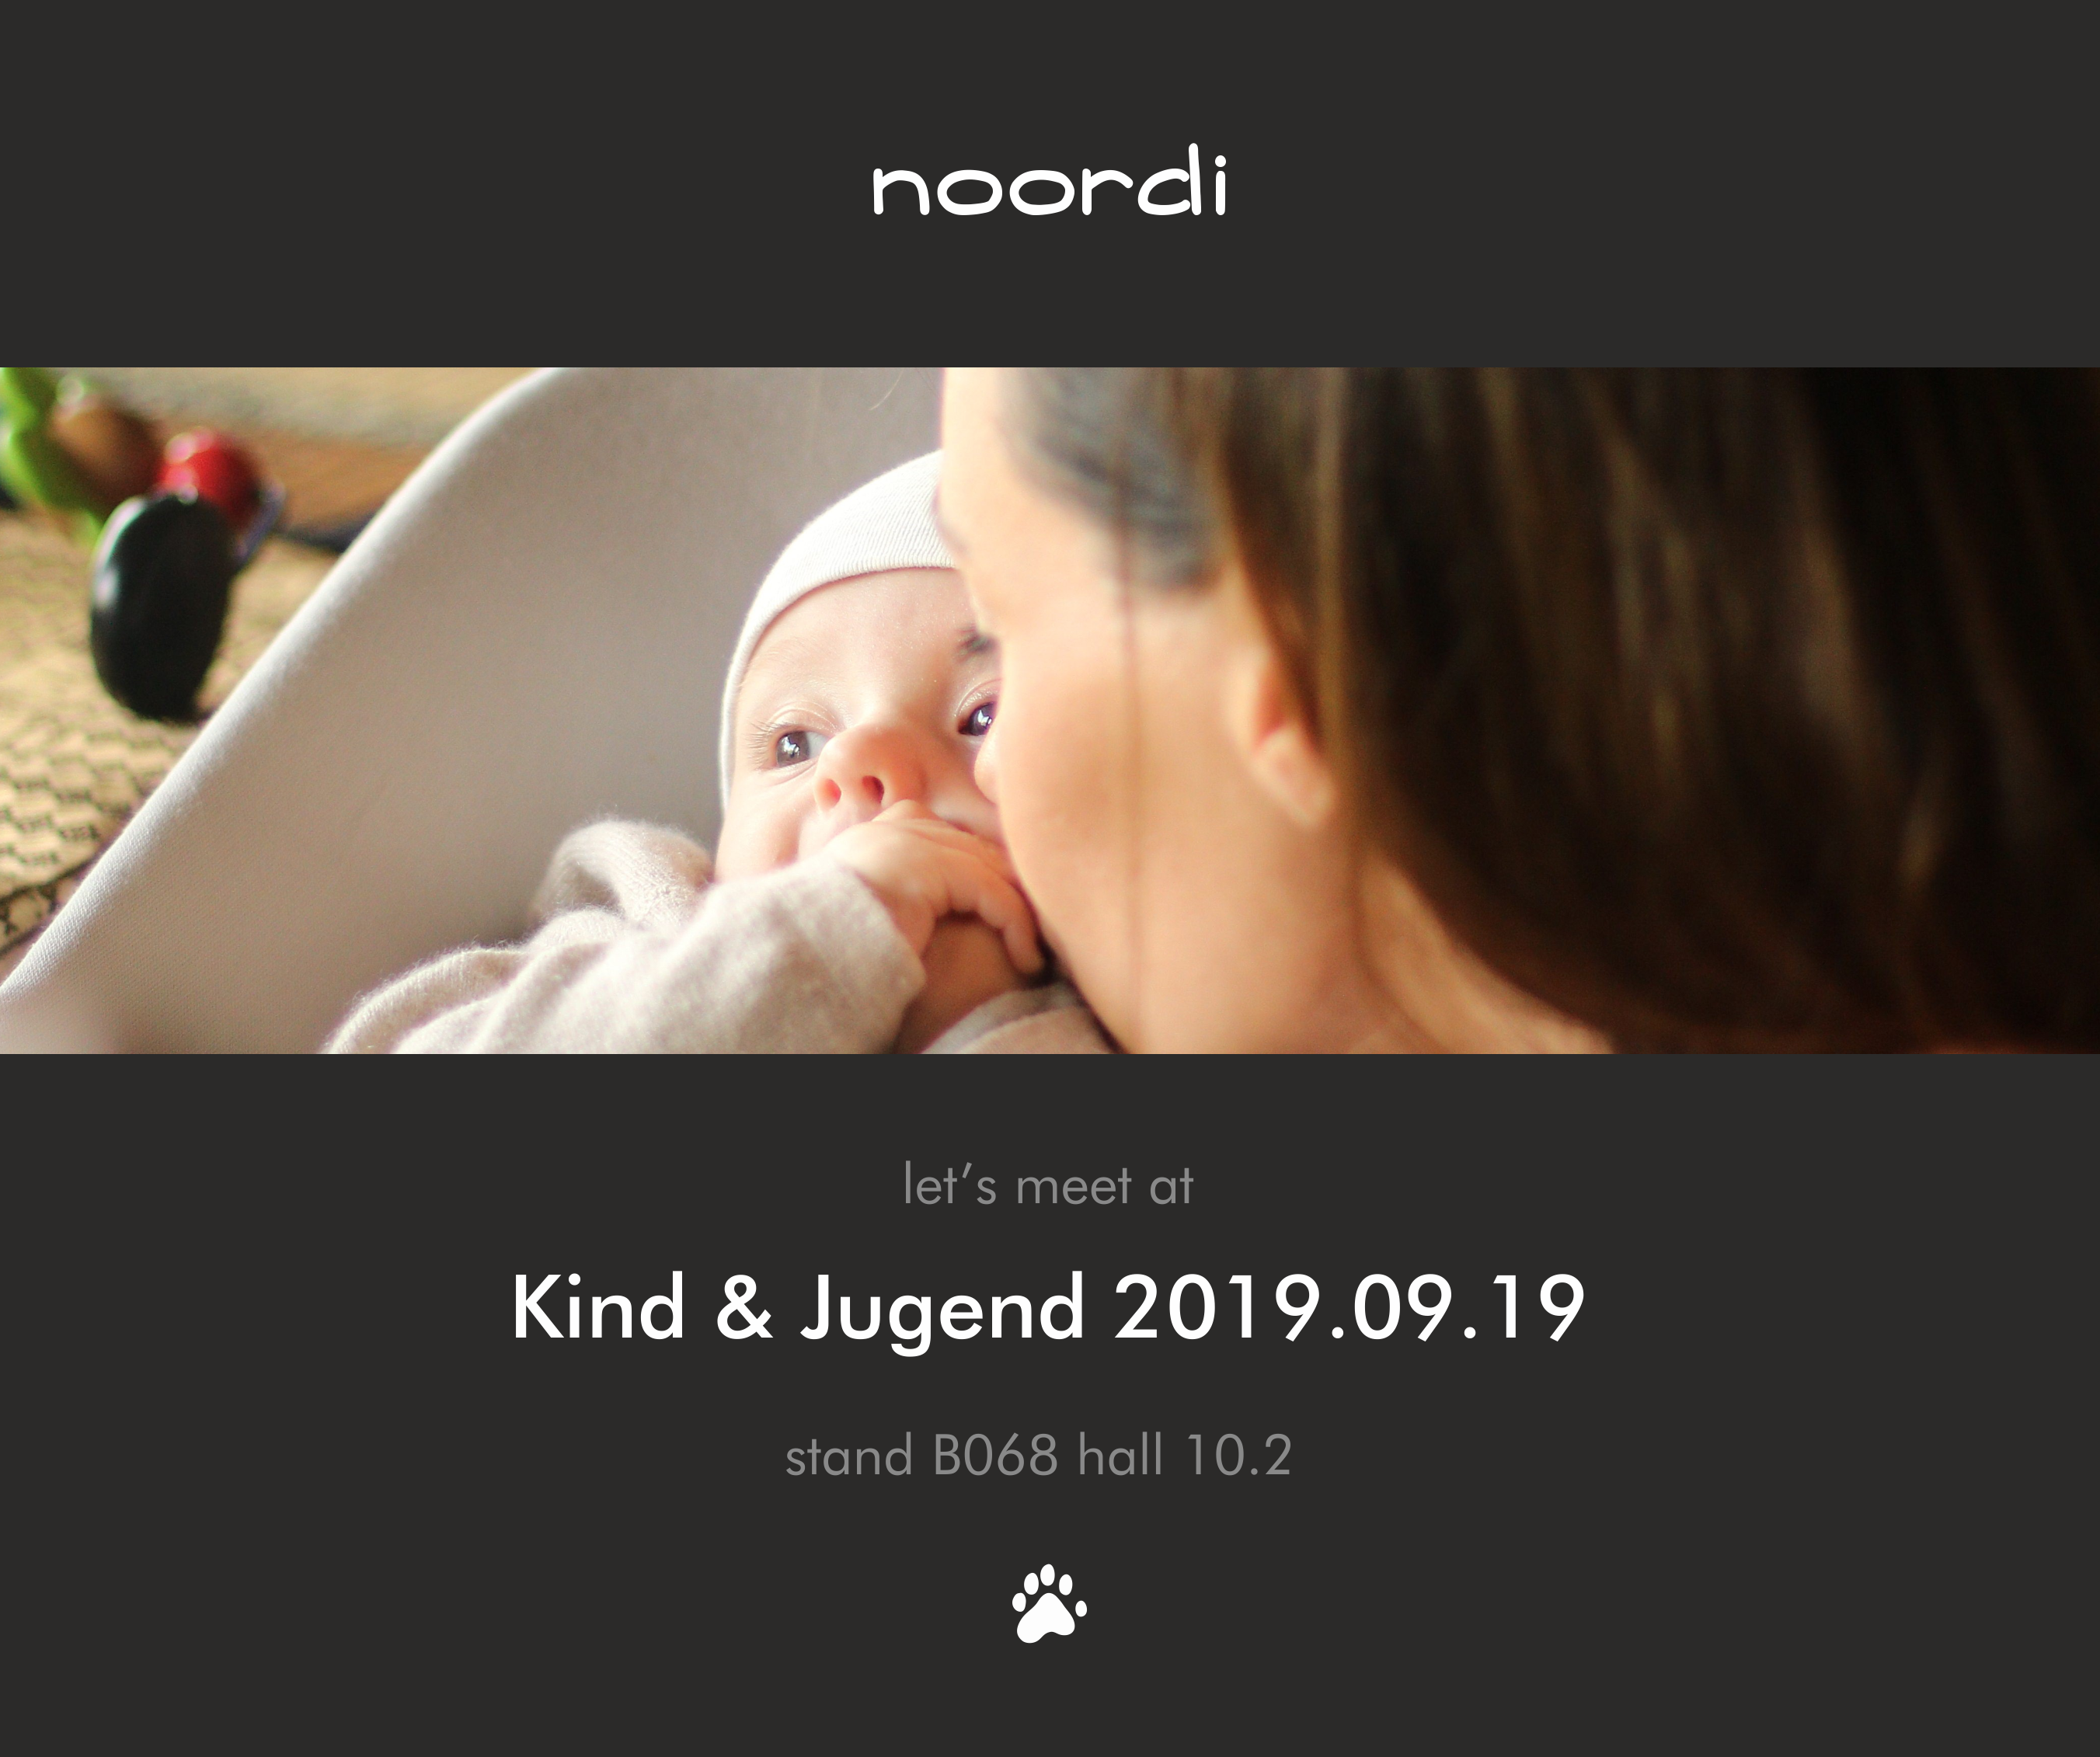 Let's meet at Kind&Jugend!